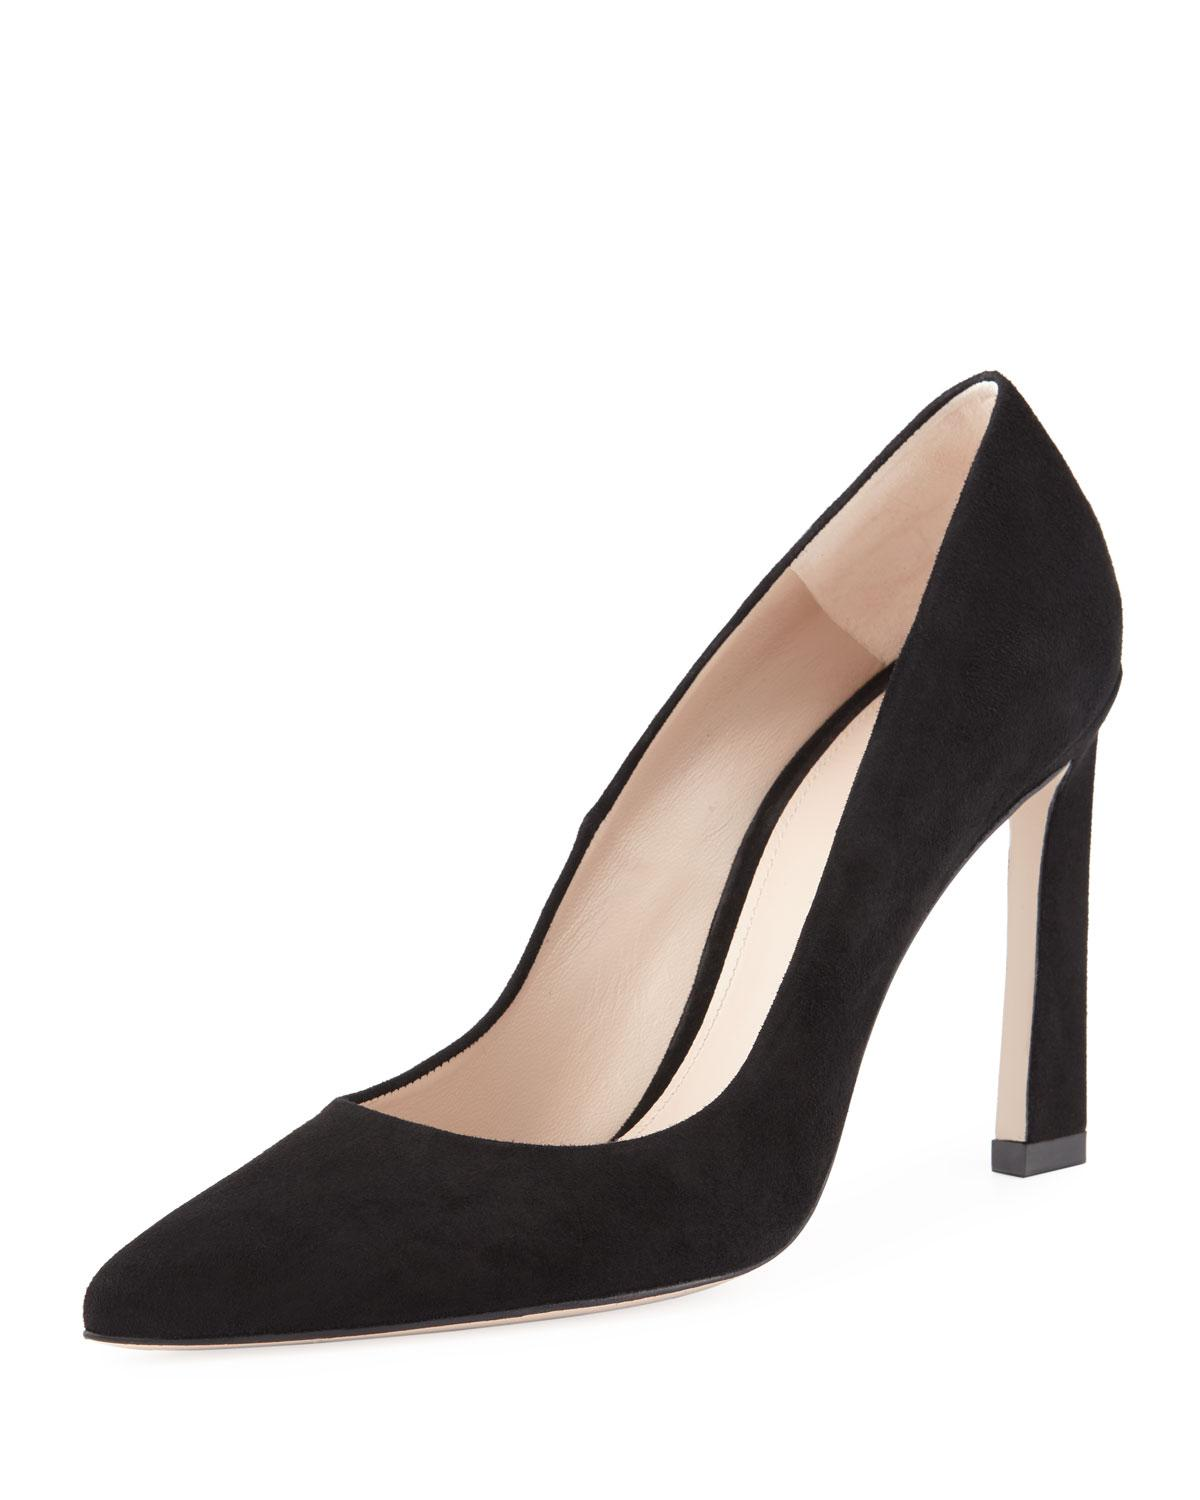 0b22f5d57ce A pointy-toe pump with a modern heel is a wardrobe mainstay that pairs well  with practically everything. Style Name  Stuart Weitzman Chicster Pointy  Toe ...